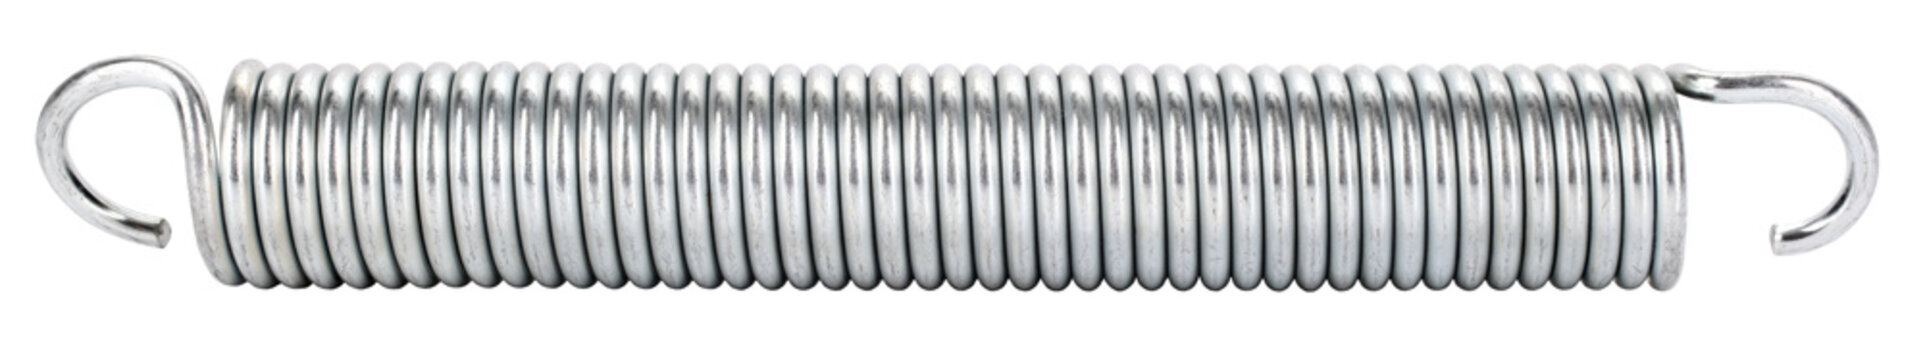 Metal spring tension coil for resist stretching